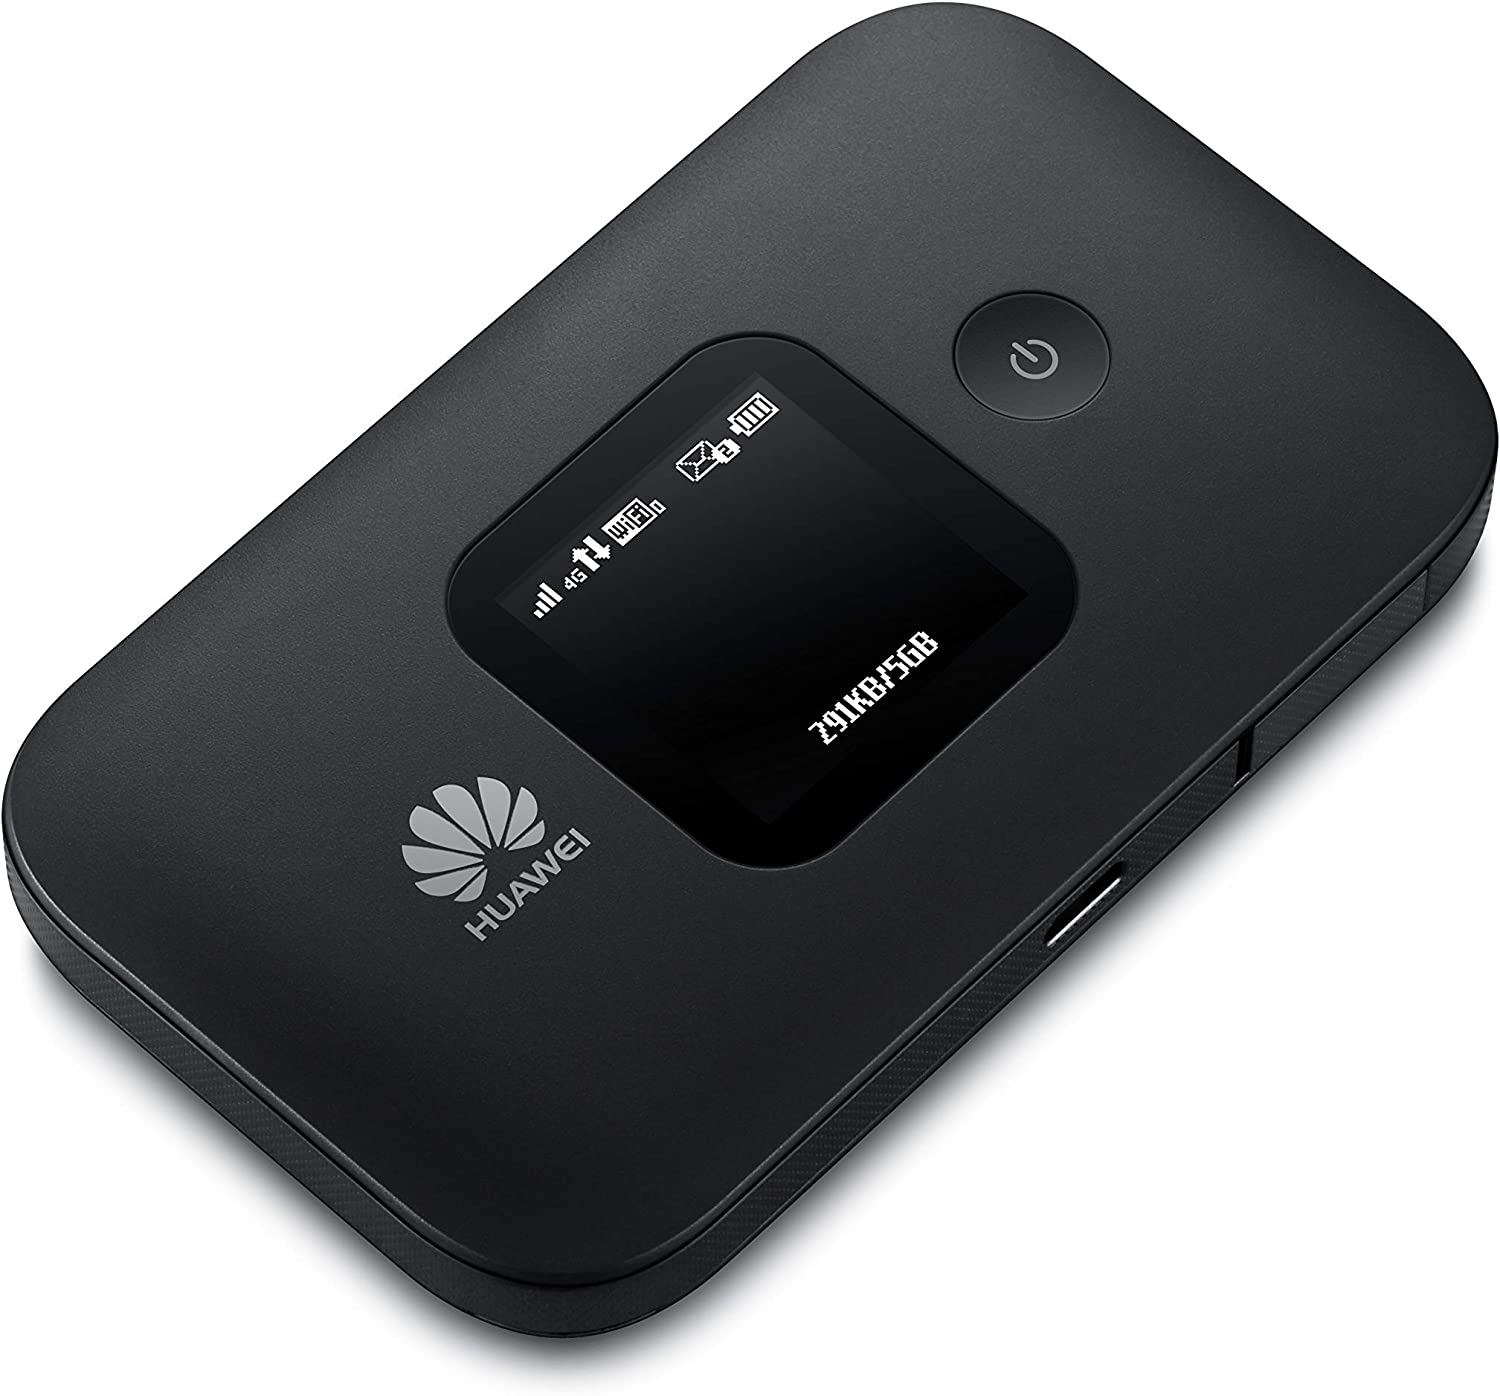 Huawei E5577 E5577-320 4G LTE Mobile WiFi Hotspot Gaming Travel Festival Music Portable Sim Card Router Mifi (4G LTE in Europe, Asia, Middle East, Africa & 3G Globally) Does Not Support USA sim Cards